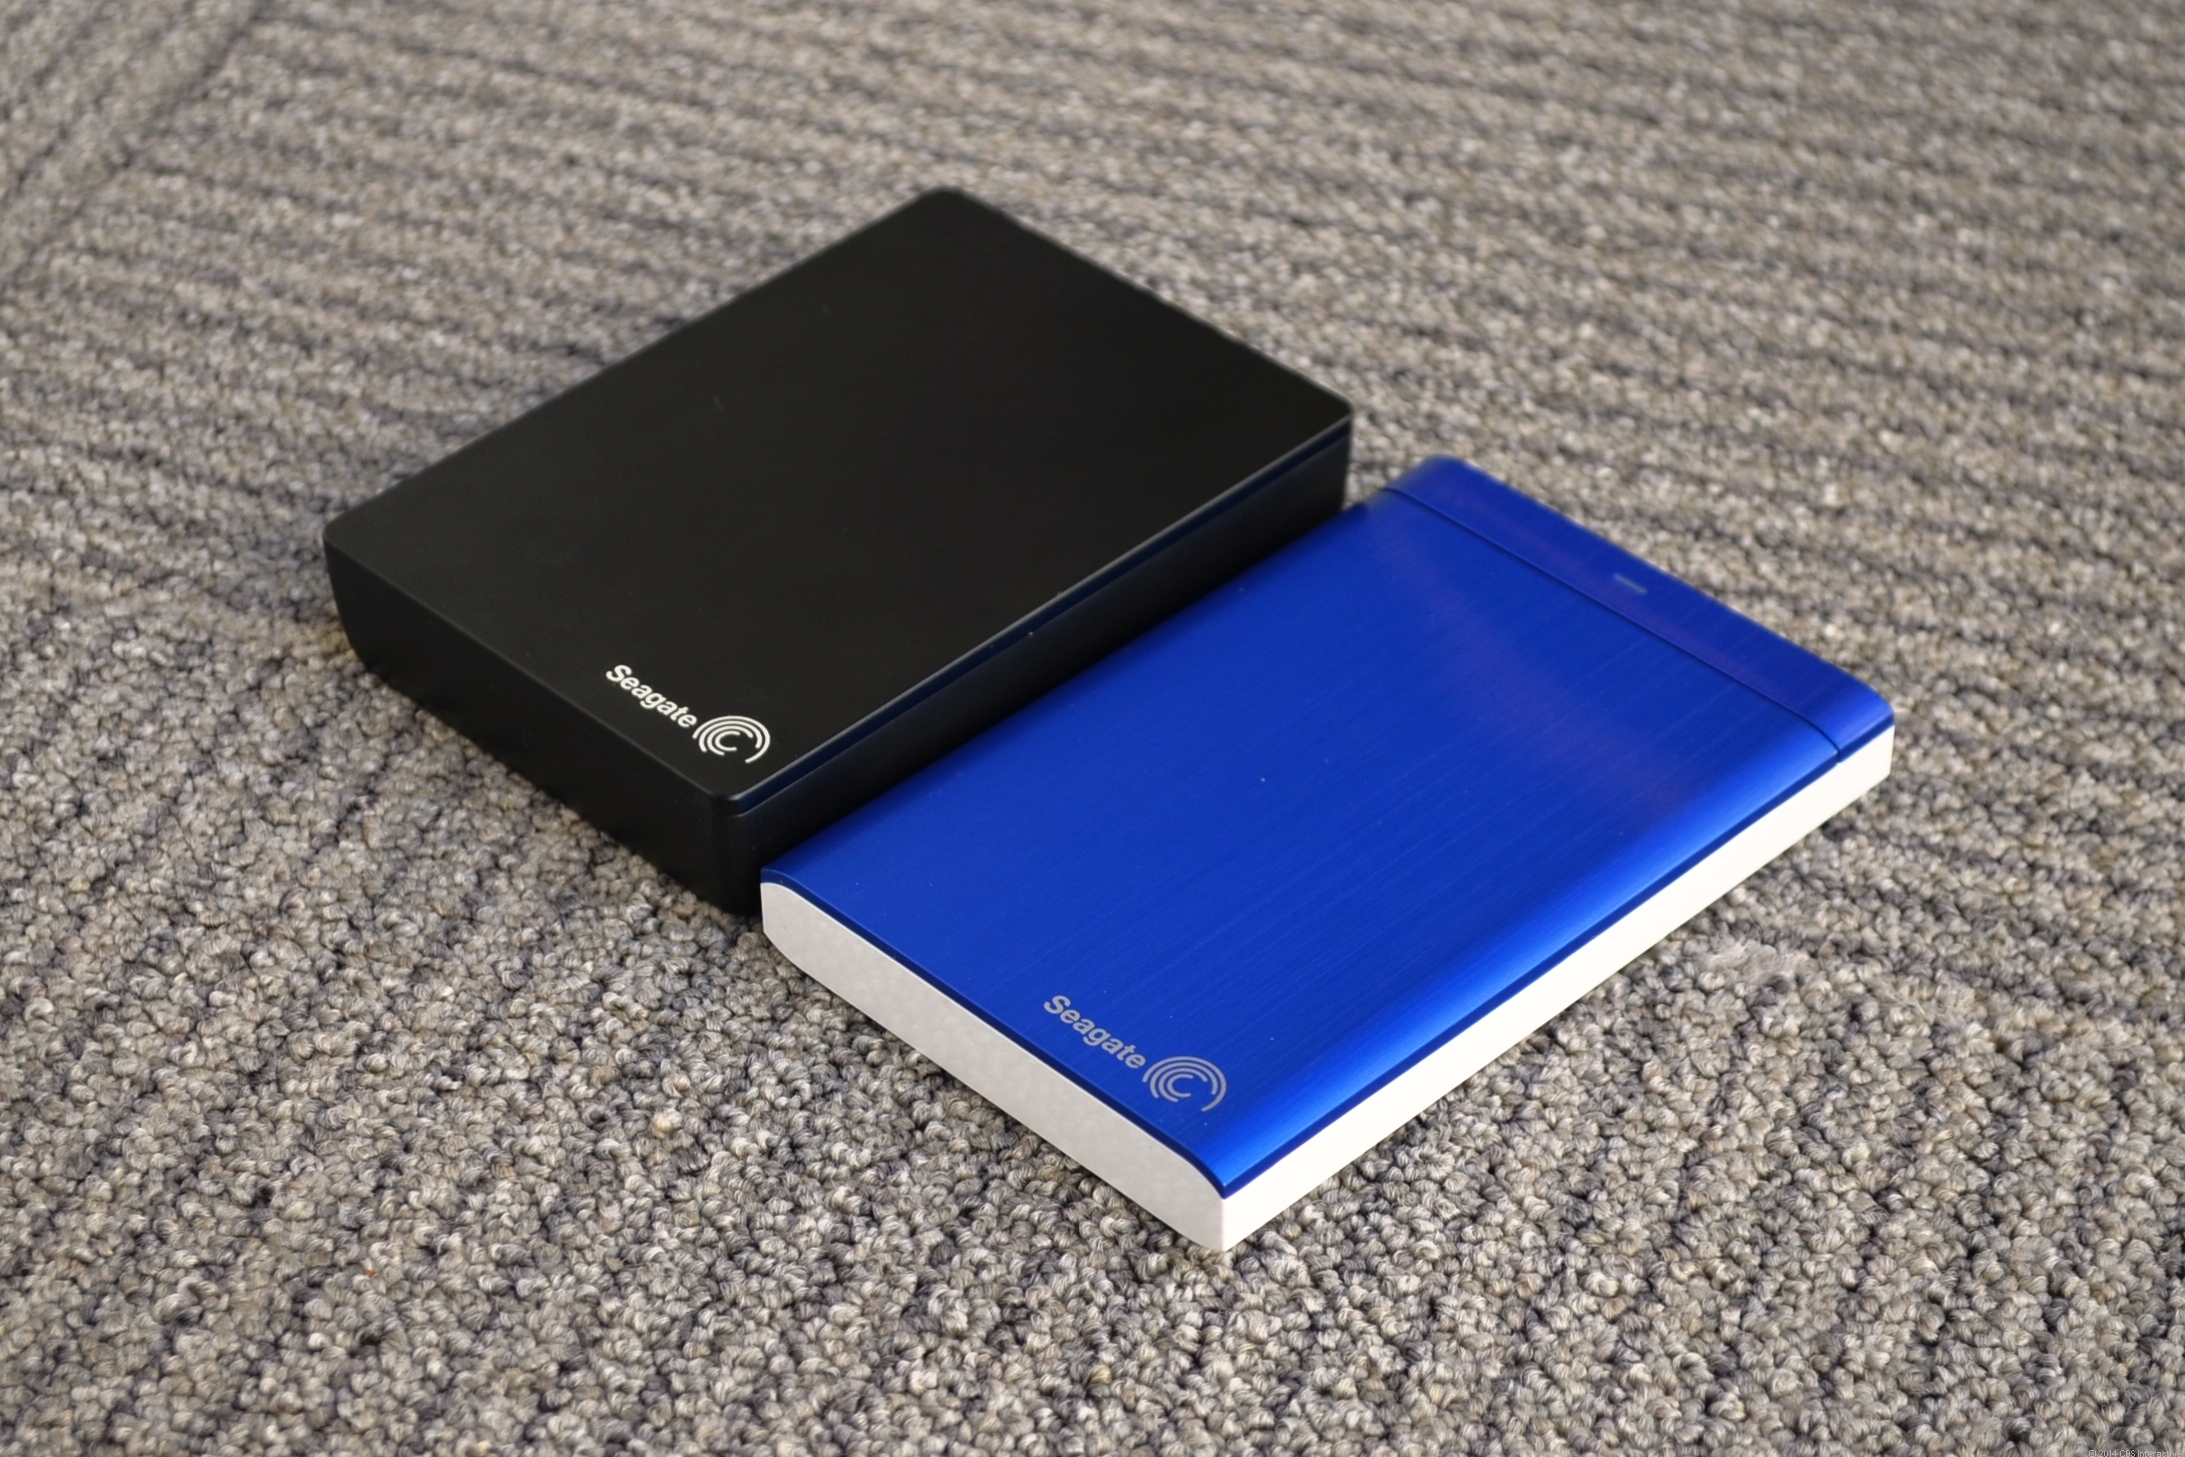 The new Backup Plus Fast (left) is much thicker than the original Backup Plus drive.